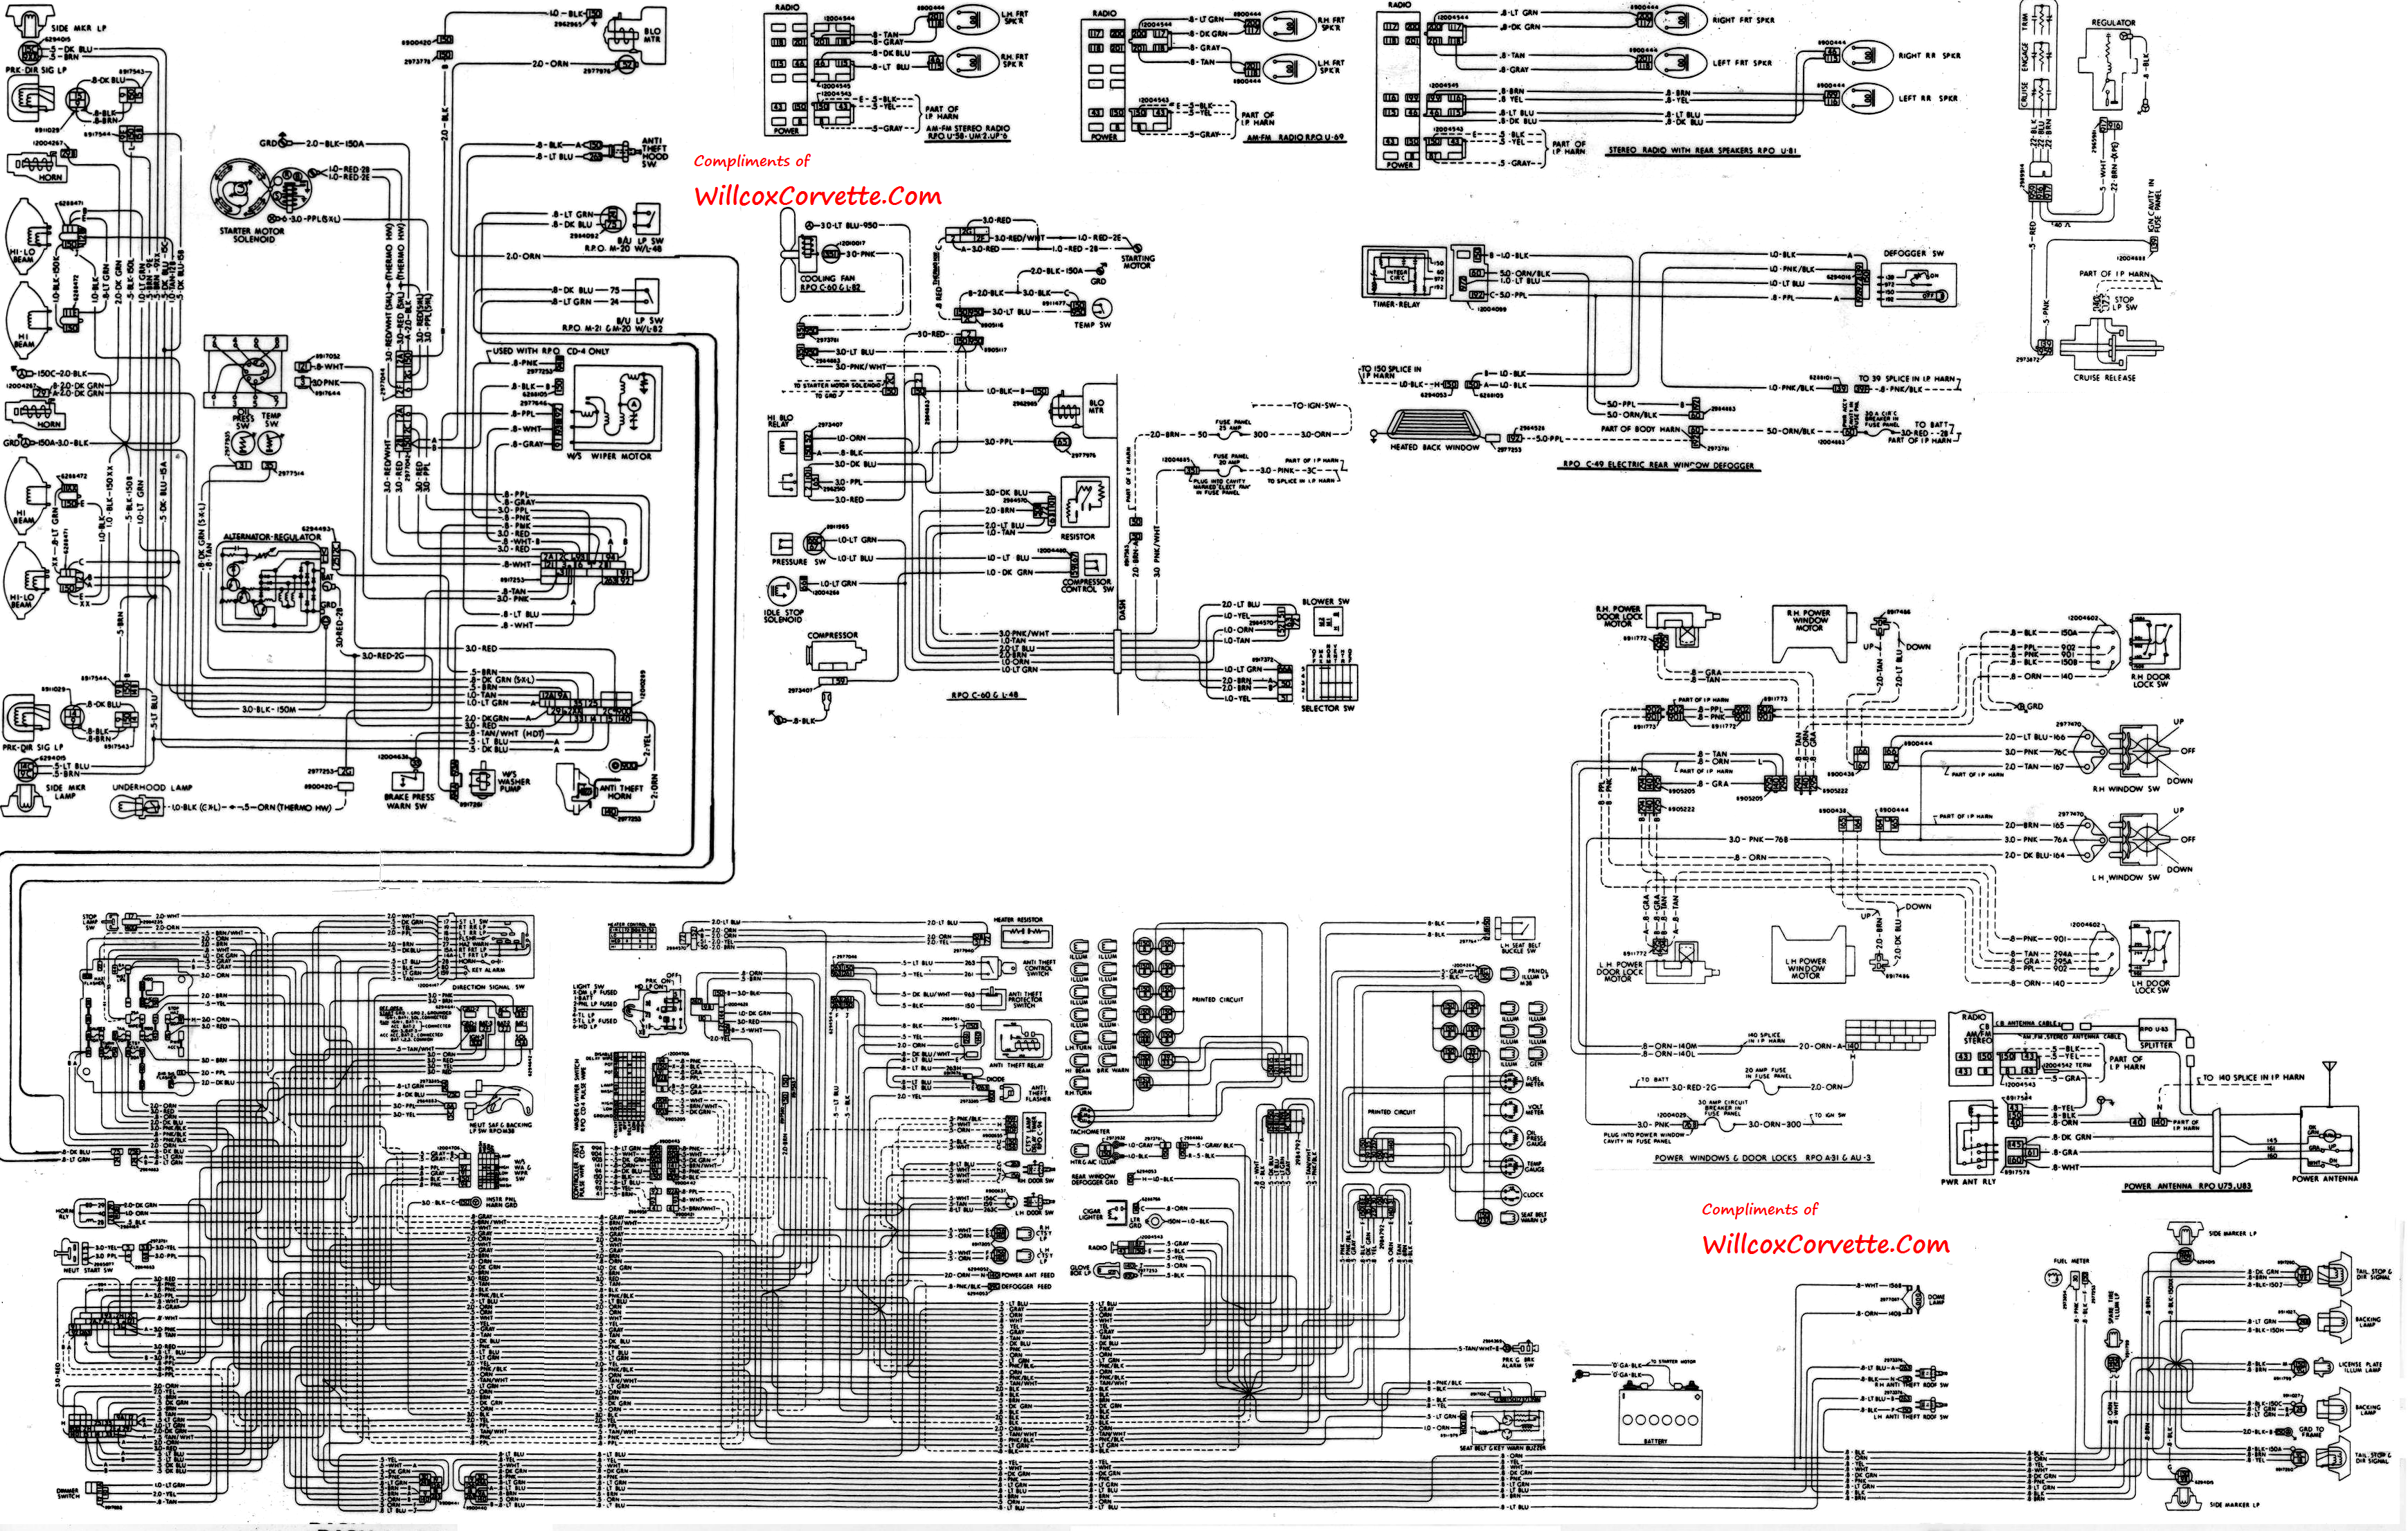 1979 wire diagram 1979 corvette wiring diagram aux fan wiring diagram 1979 corvette 1979 Corvette Fuse Box Diagram at virtualis.co